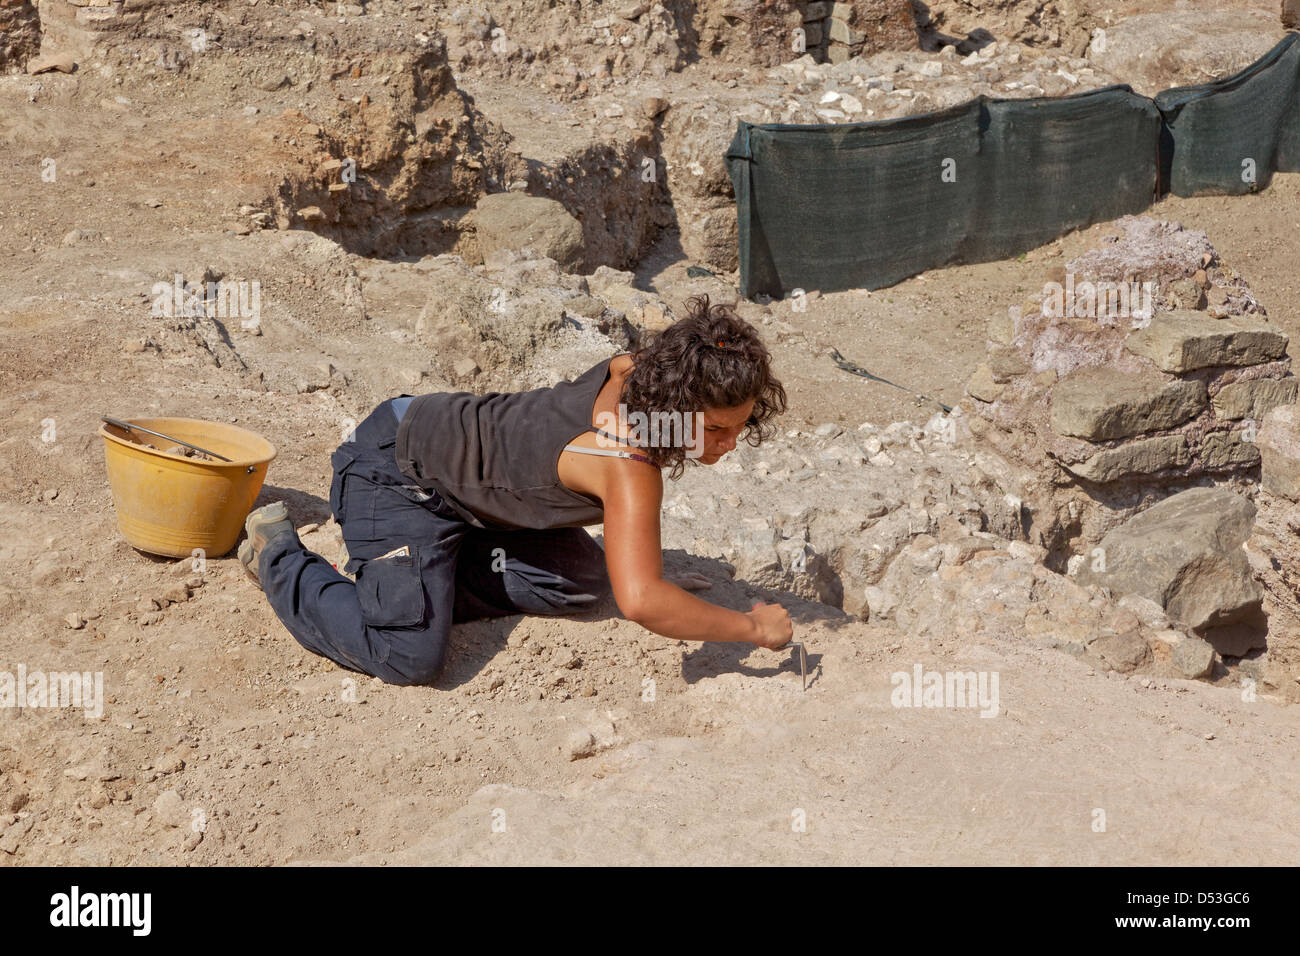 Archaeologist excavating a Roman site adjacent to the  Arch of Constantine, Rome, Italy - Stock Image